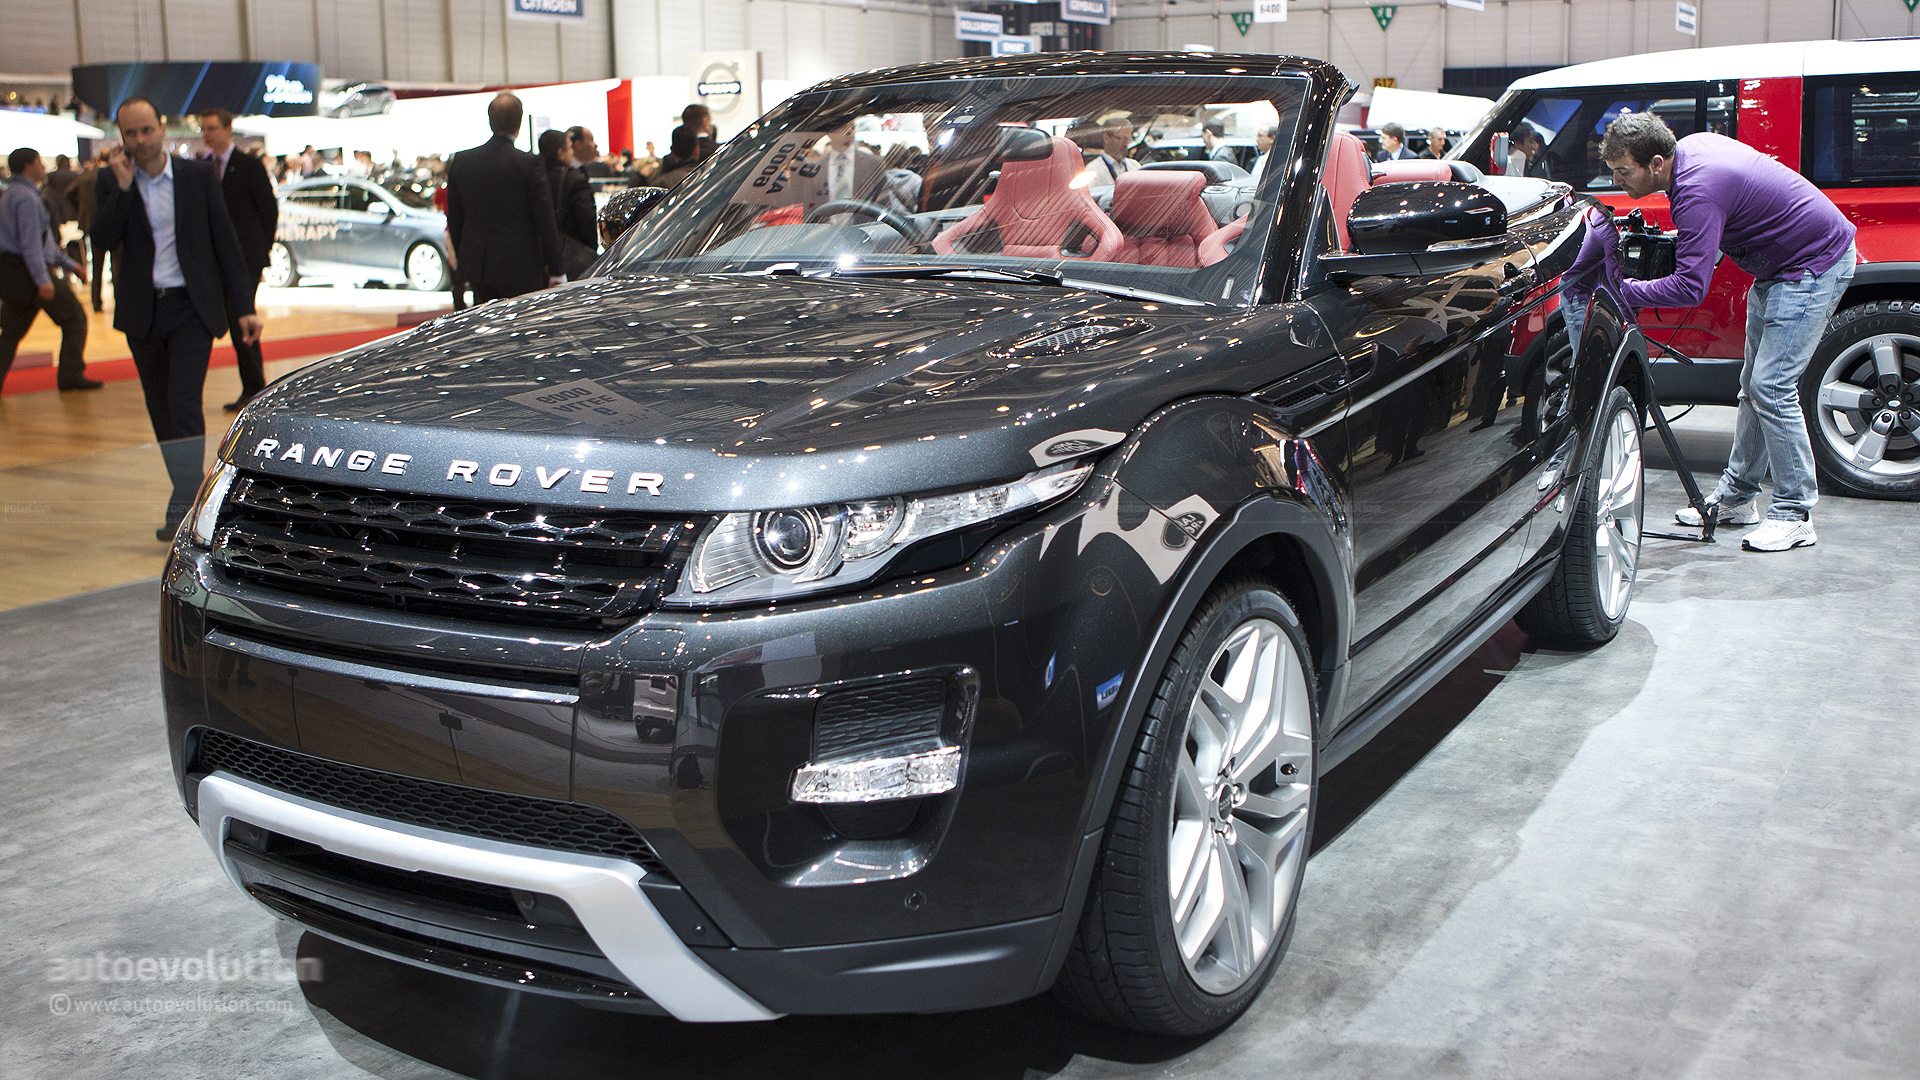 https://s1.cdn.autoevolution.com/images/news/gallery/evoque-convertible-could-be-coming-as-soon-as-2014_1.jpg